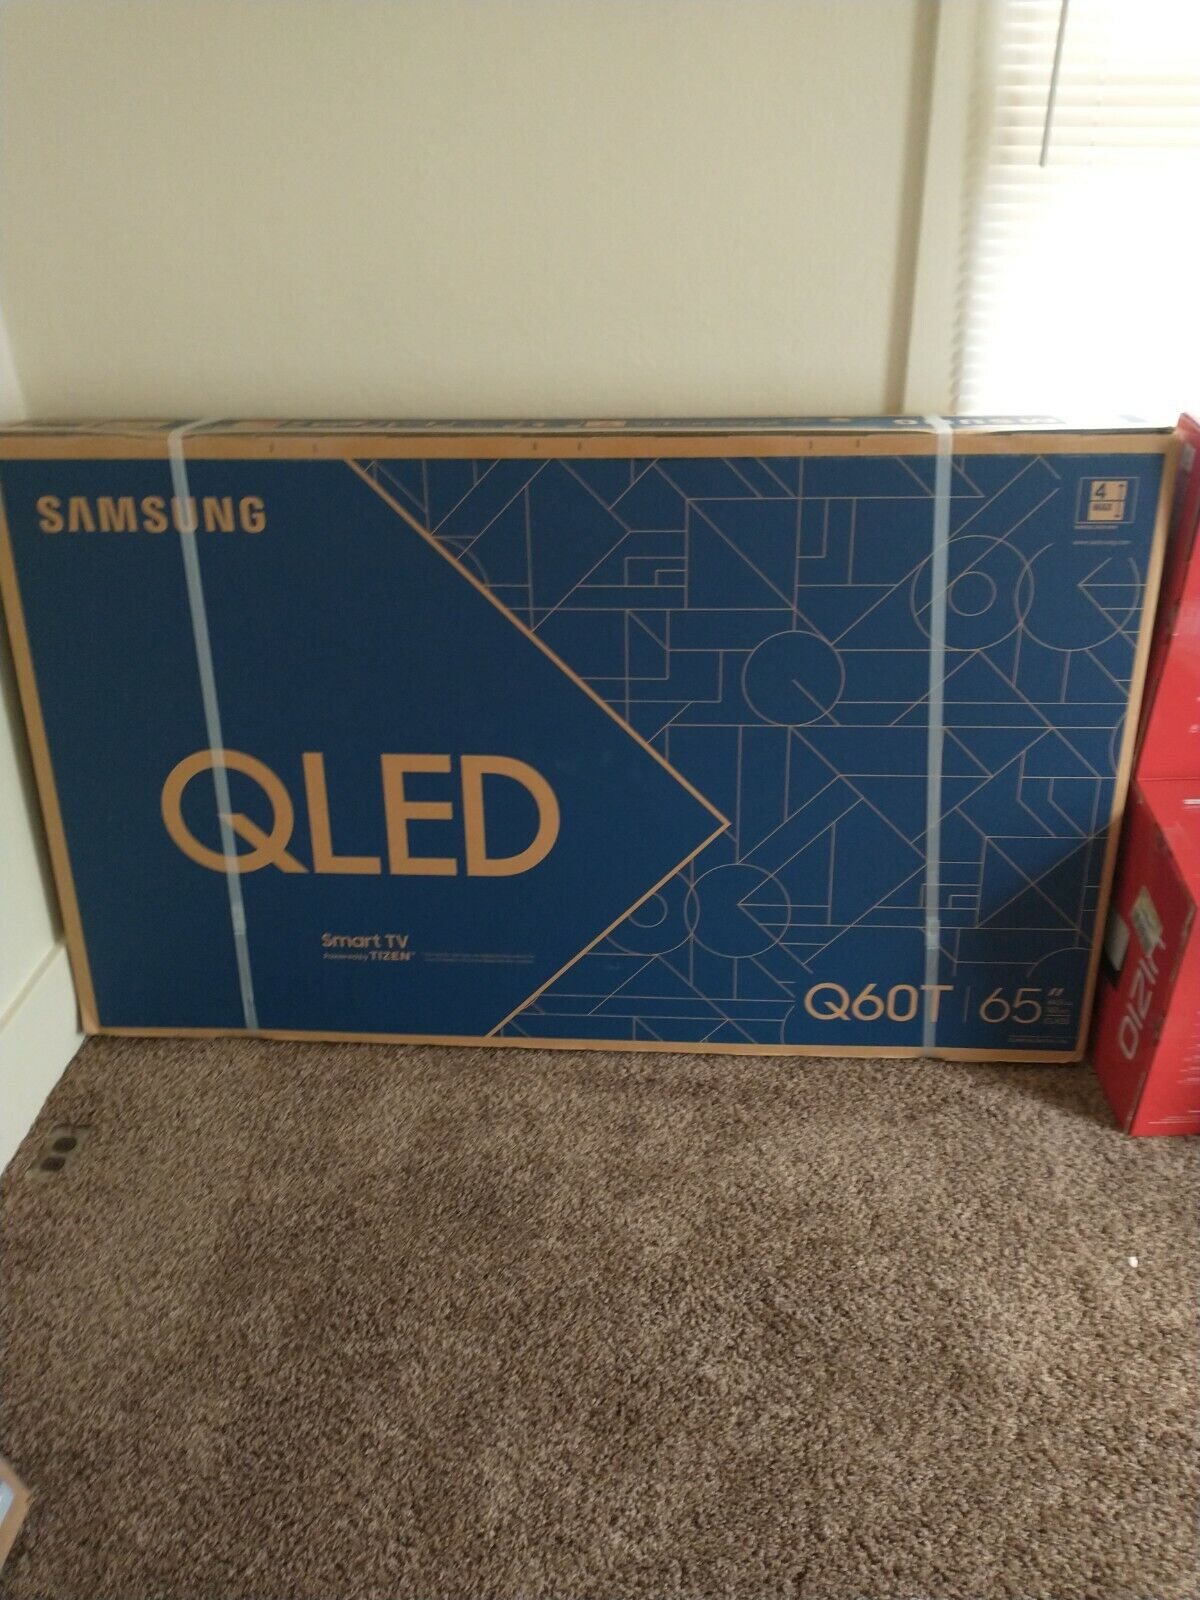 Samsung 65 Inch Smart TV  Crystal UHD. Available Now for 682.00